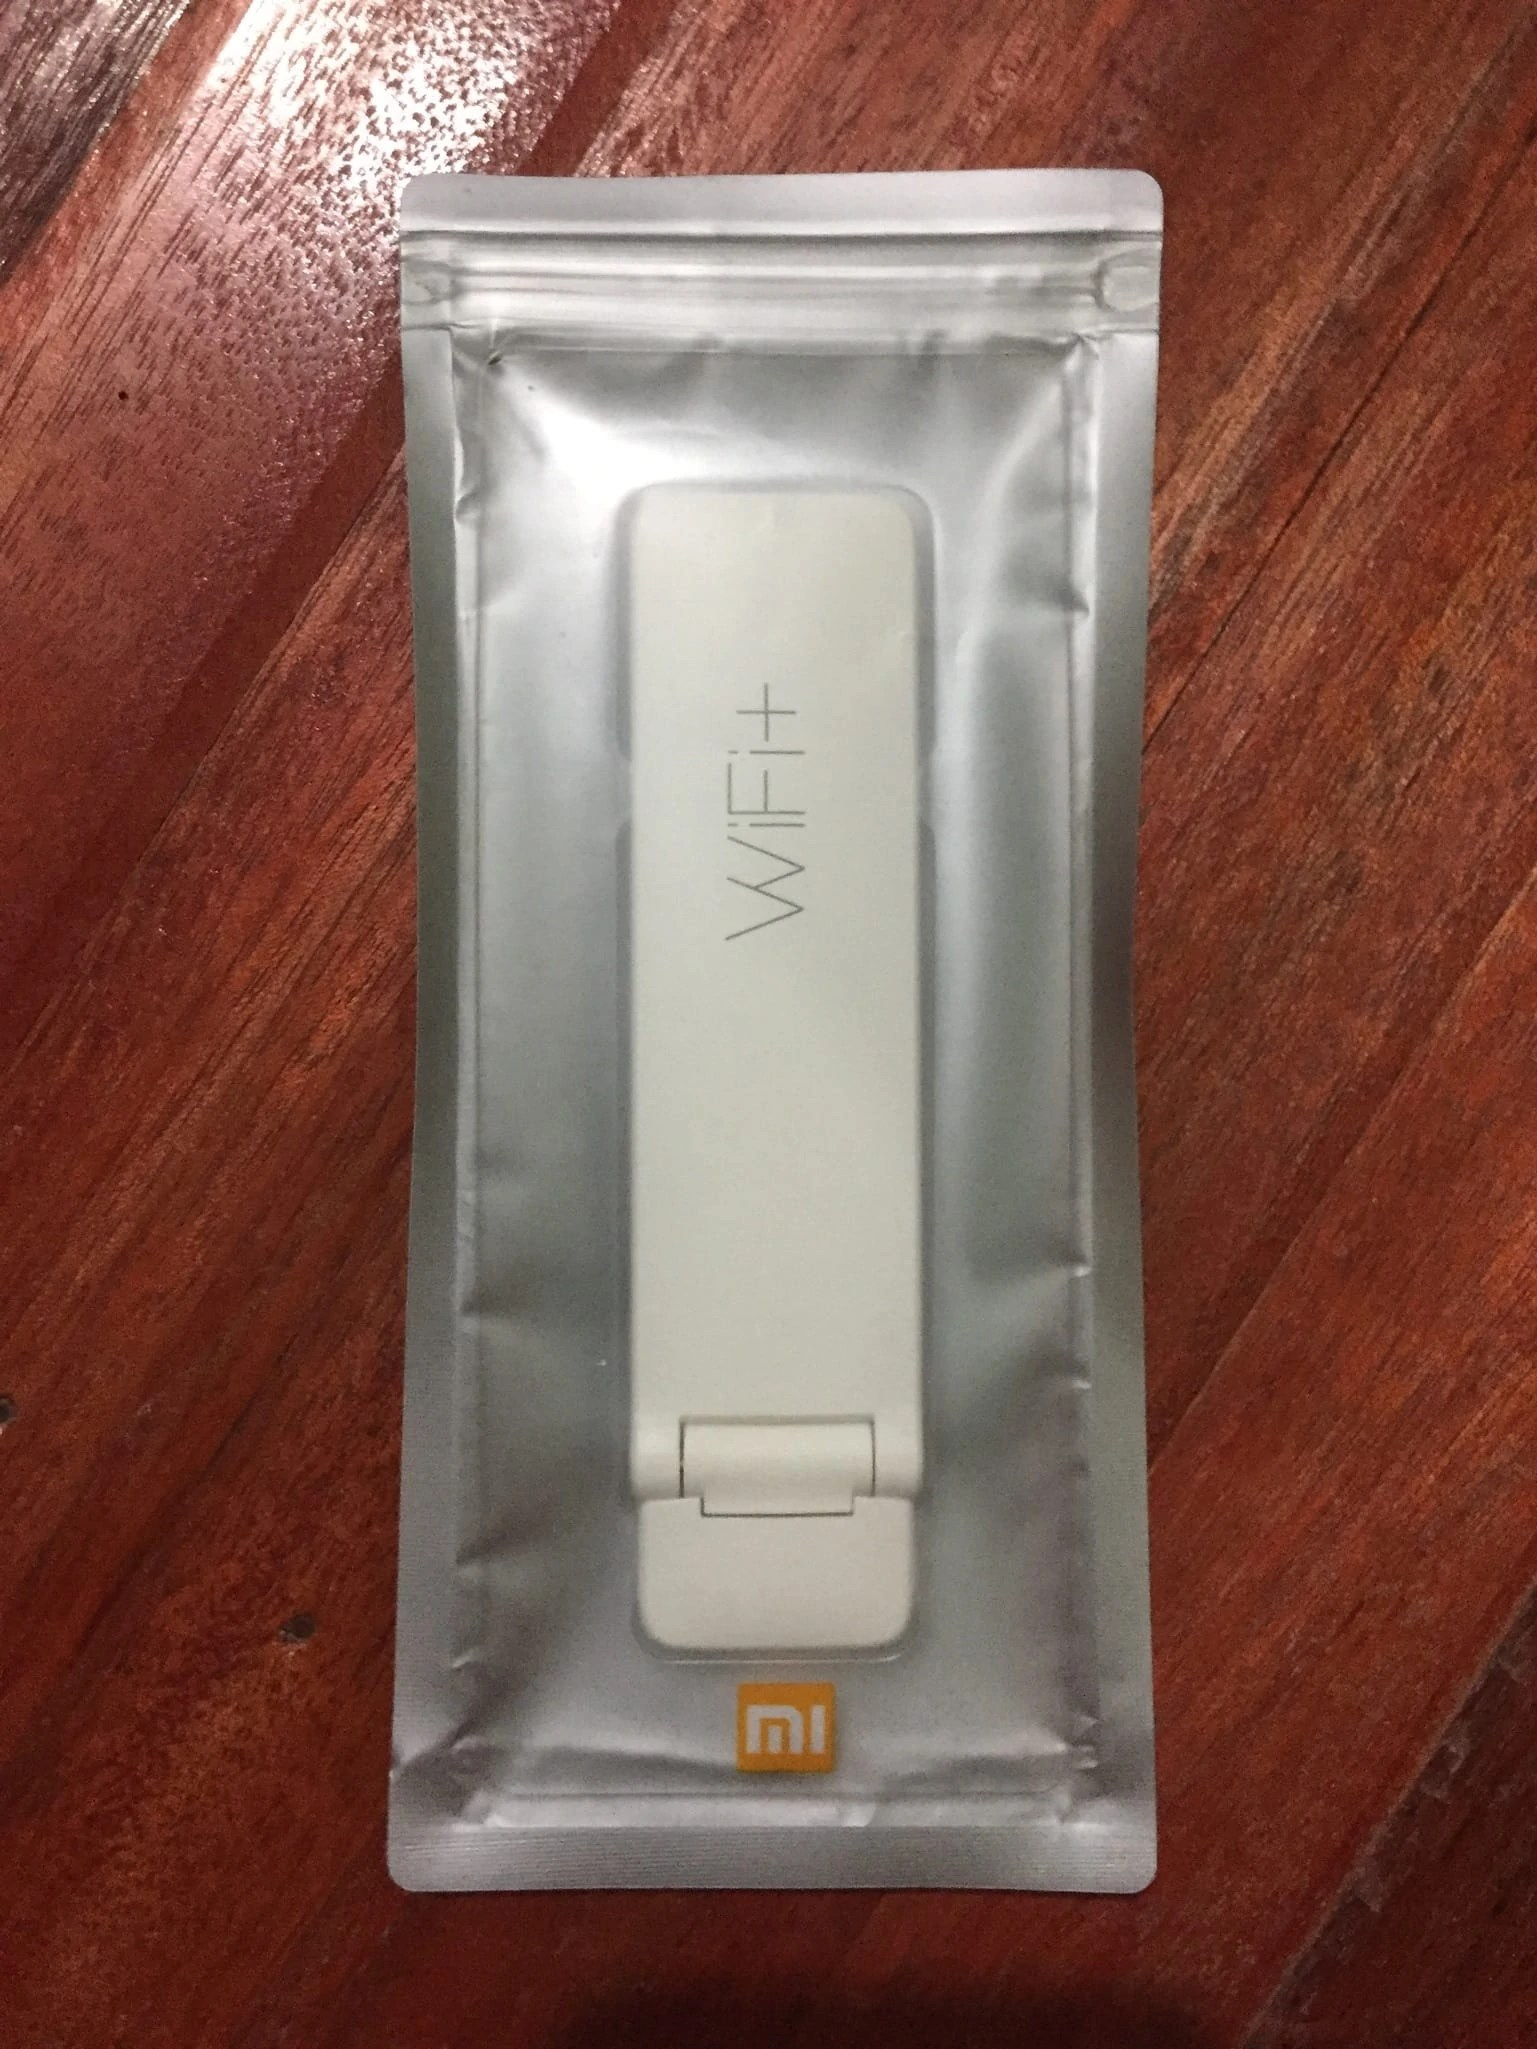 Xiaomi Mi WiFi Repeater 2 Quick Review and Set Up